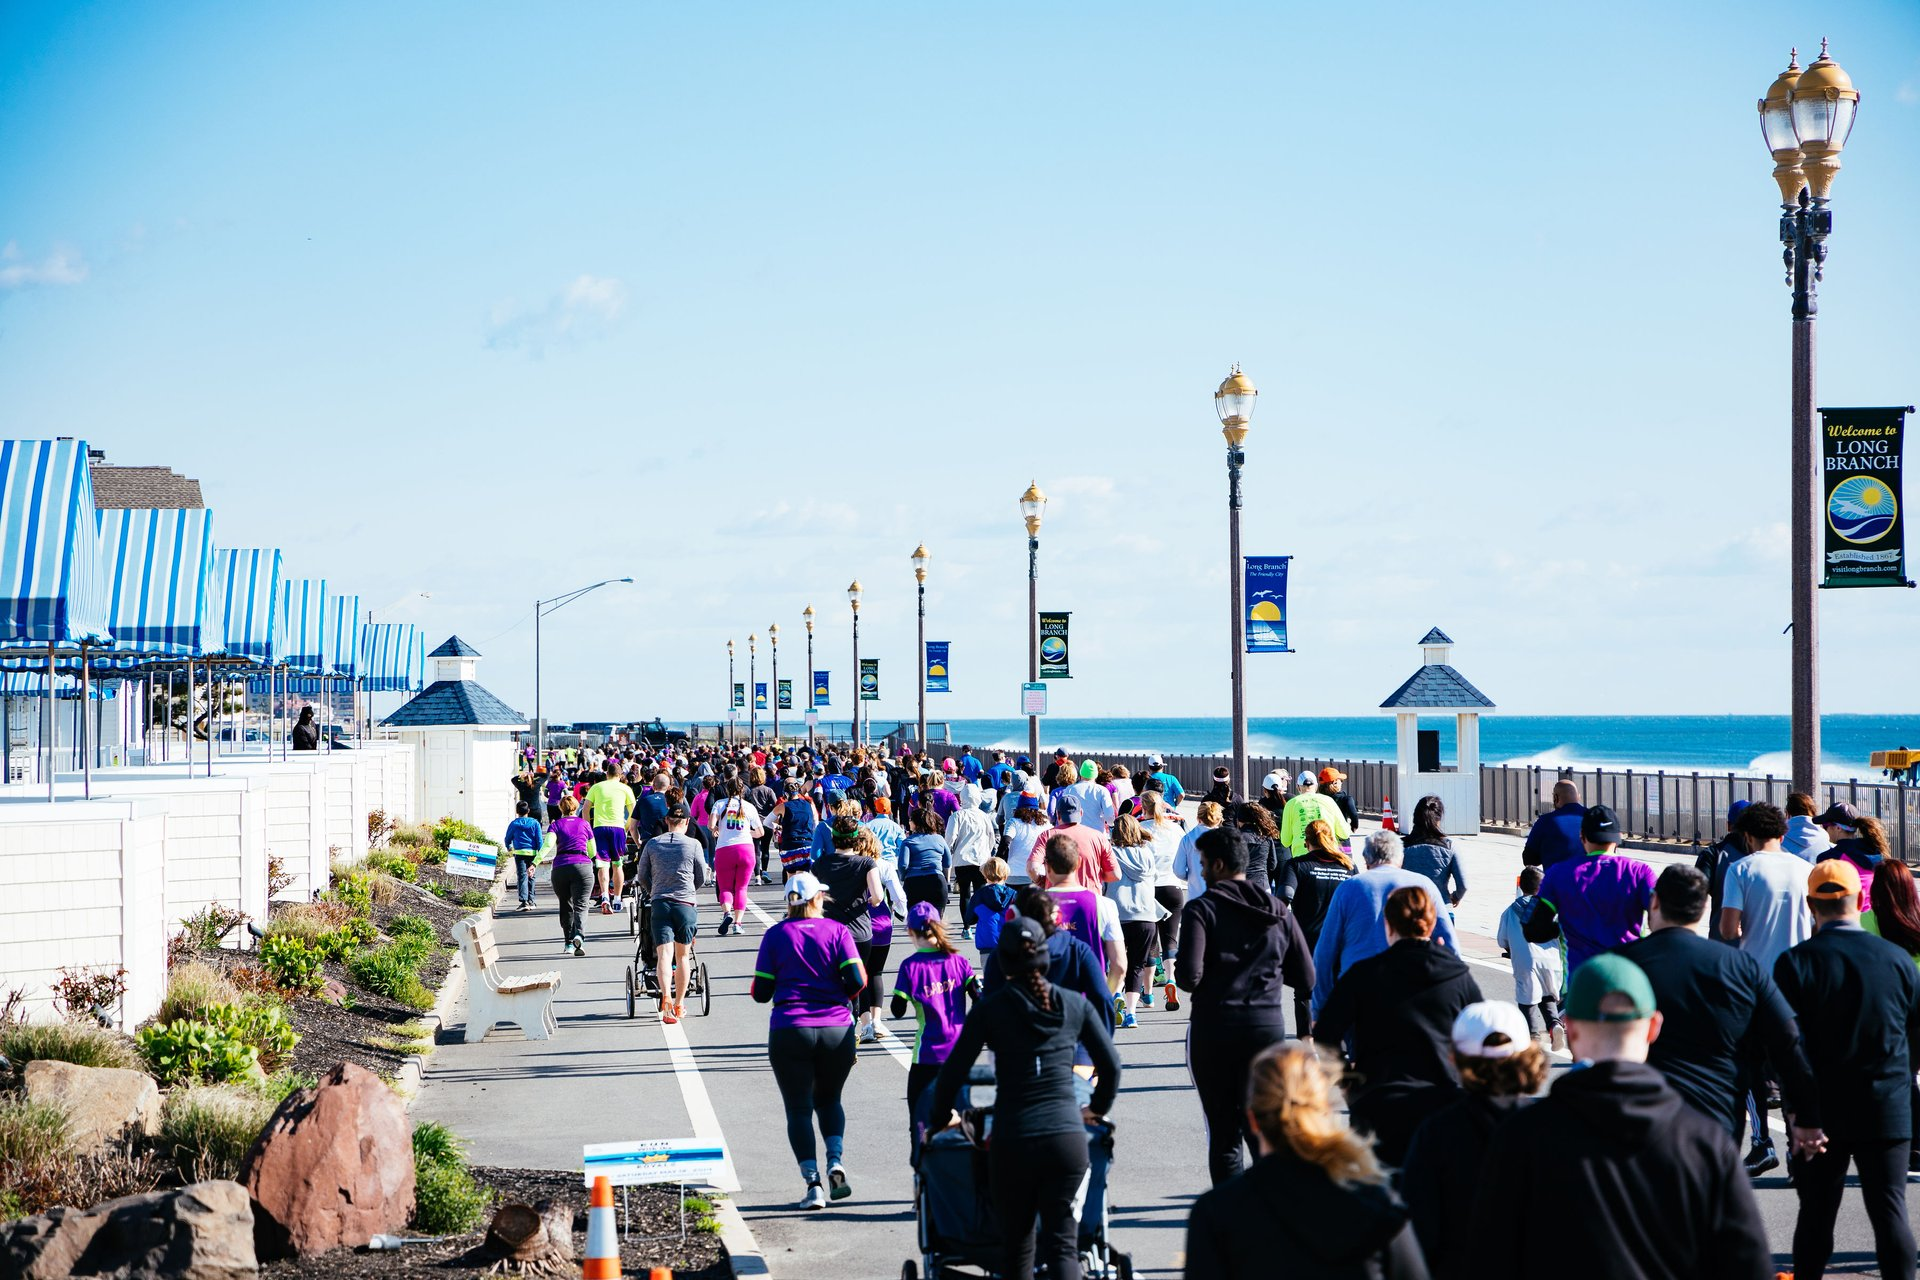 New Jersey Marathon & Half Marathon in New Jersey - Best Season 2020